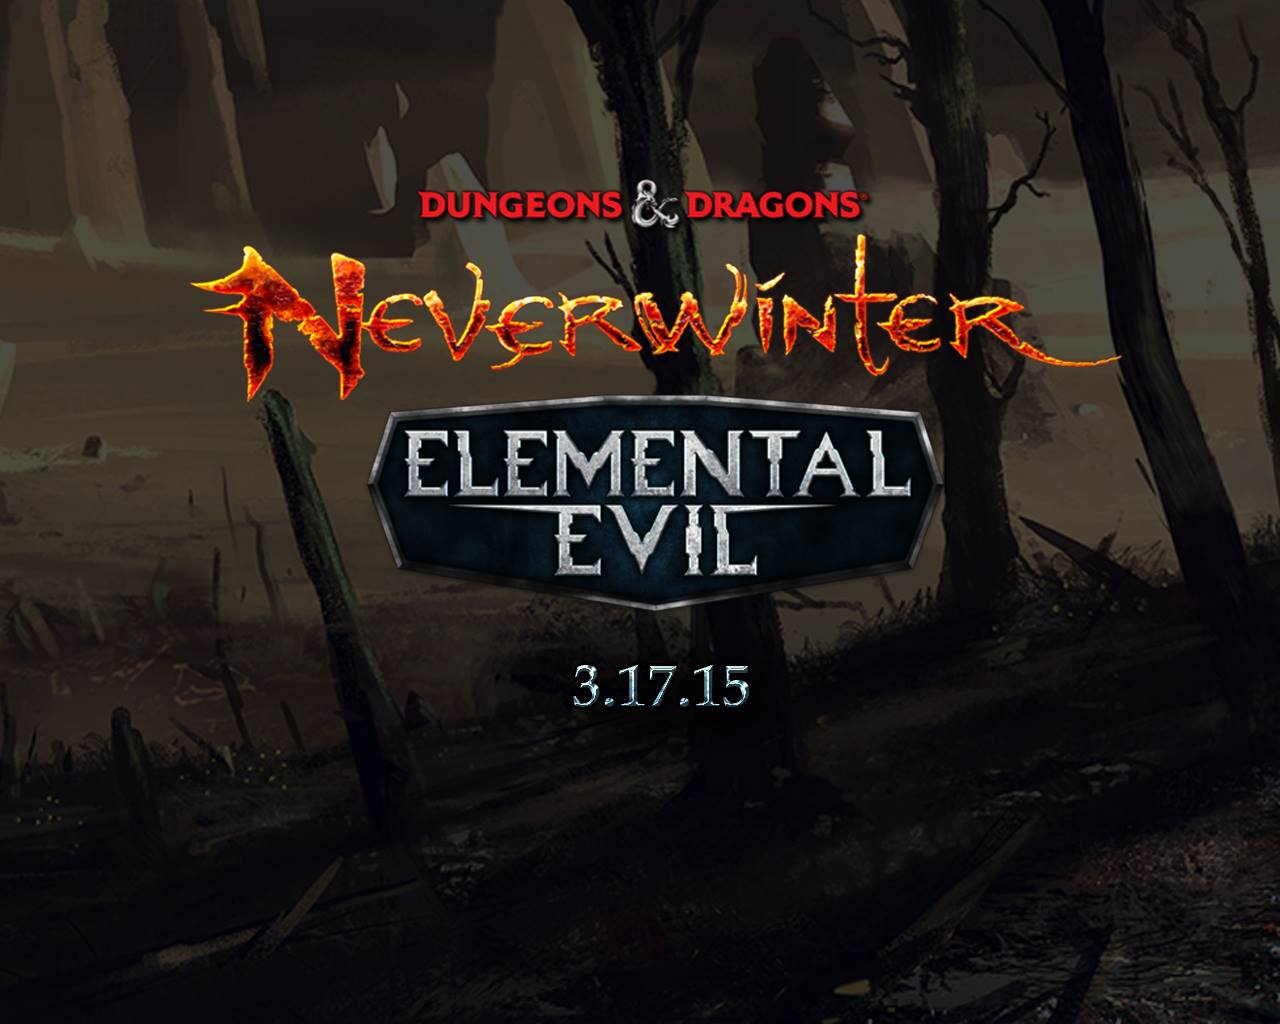 Neverwinter Elemental Evil launch date